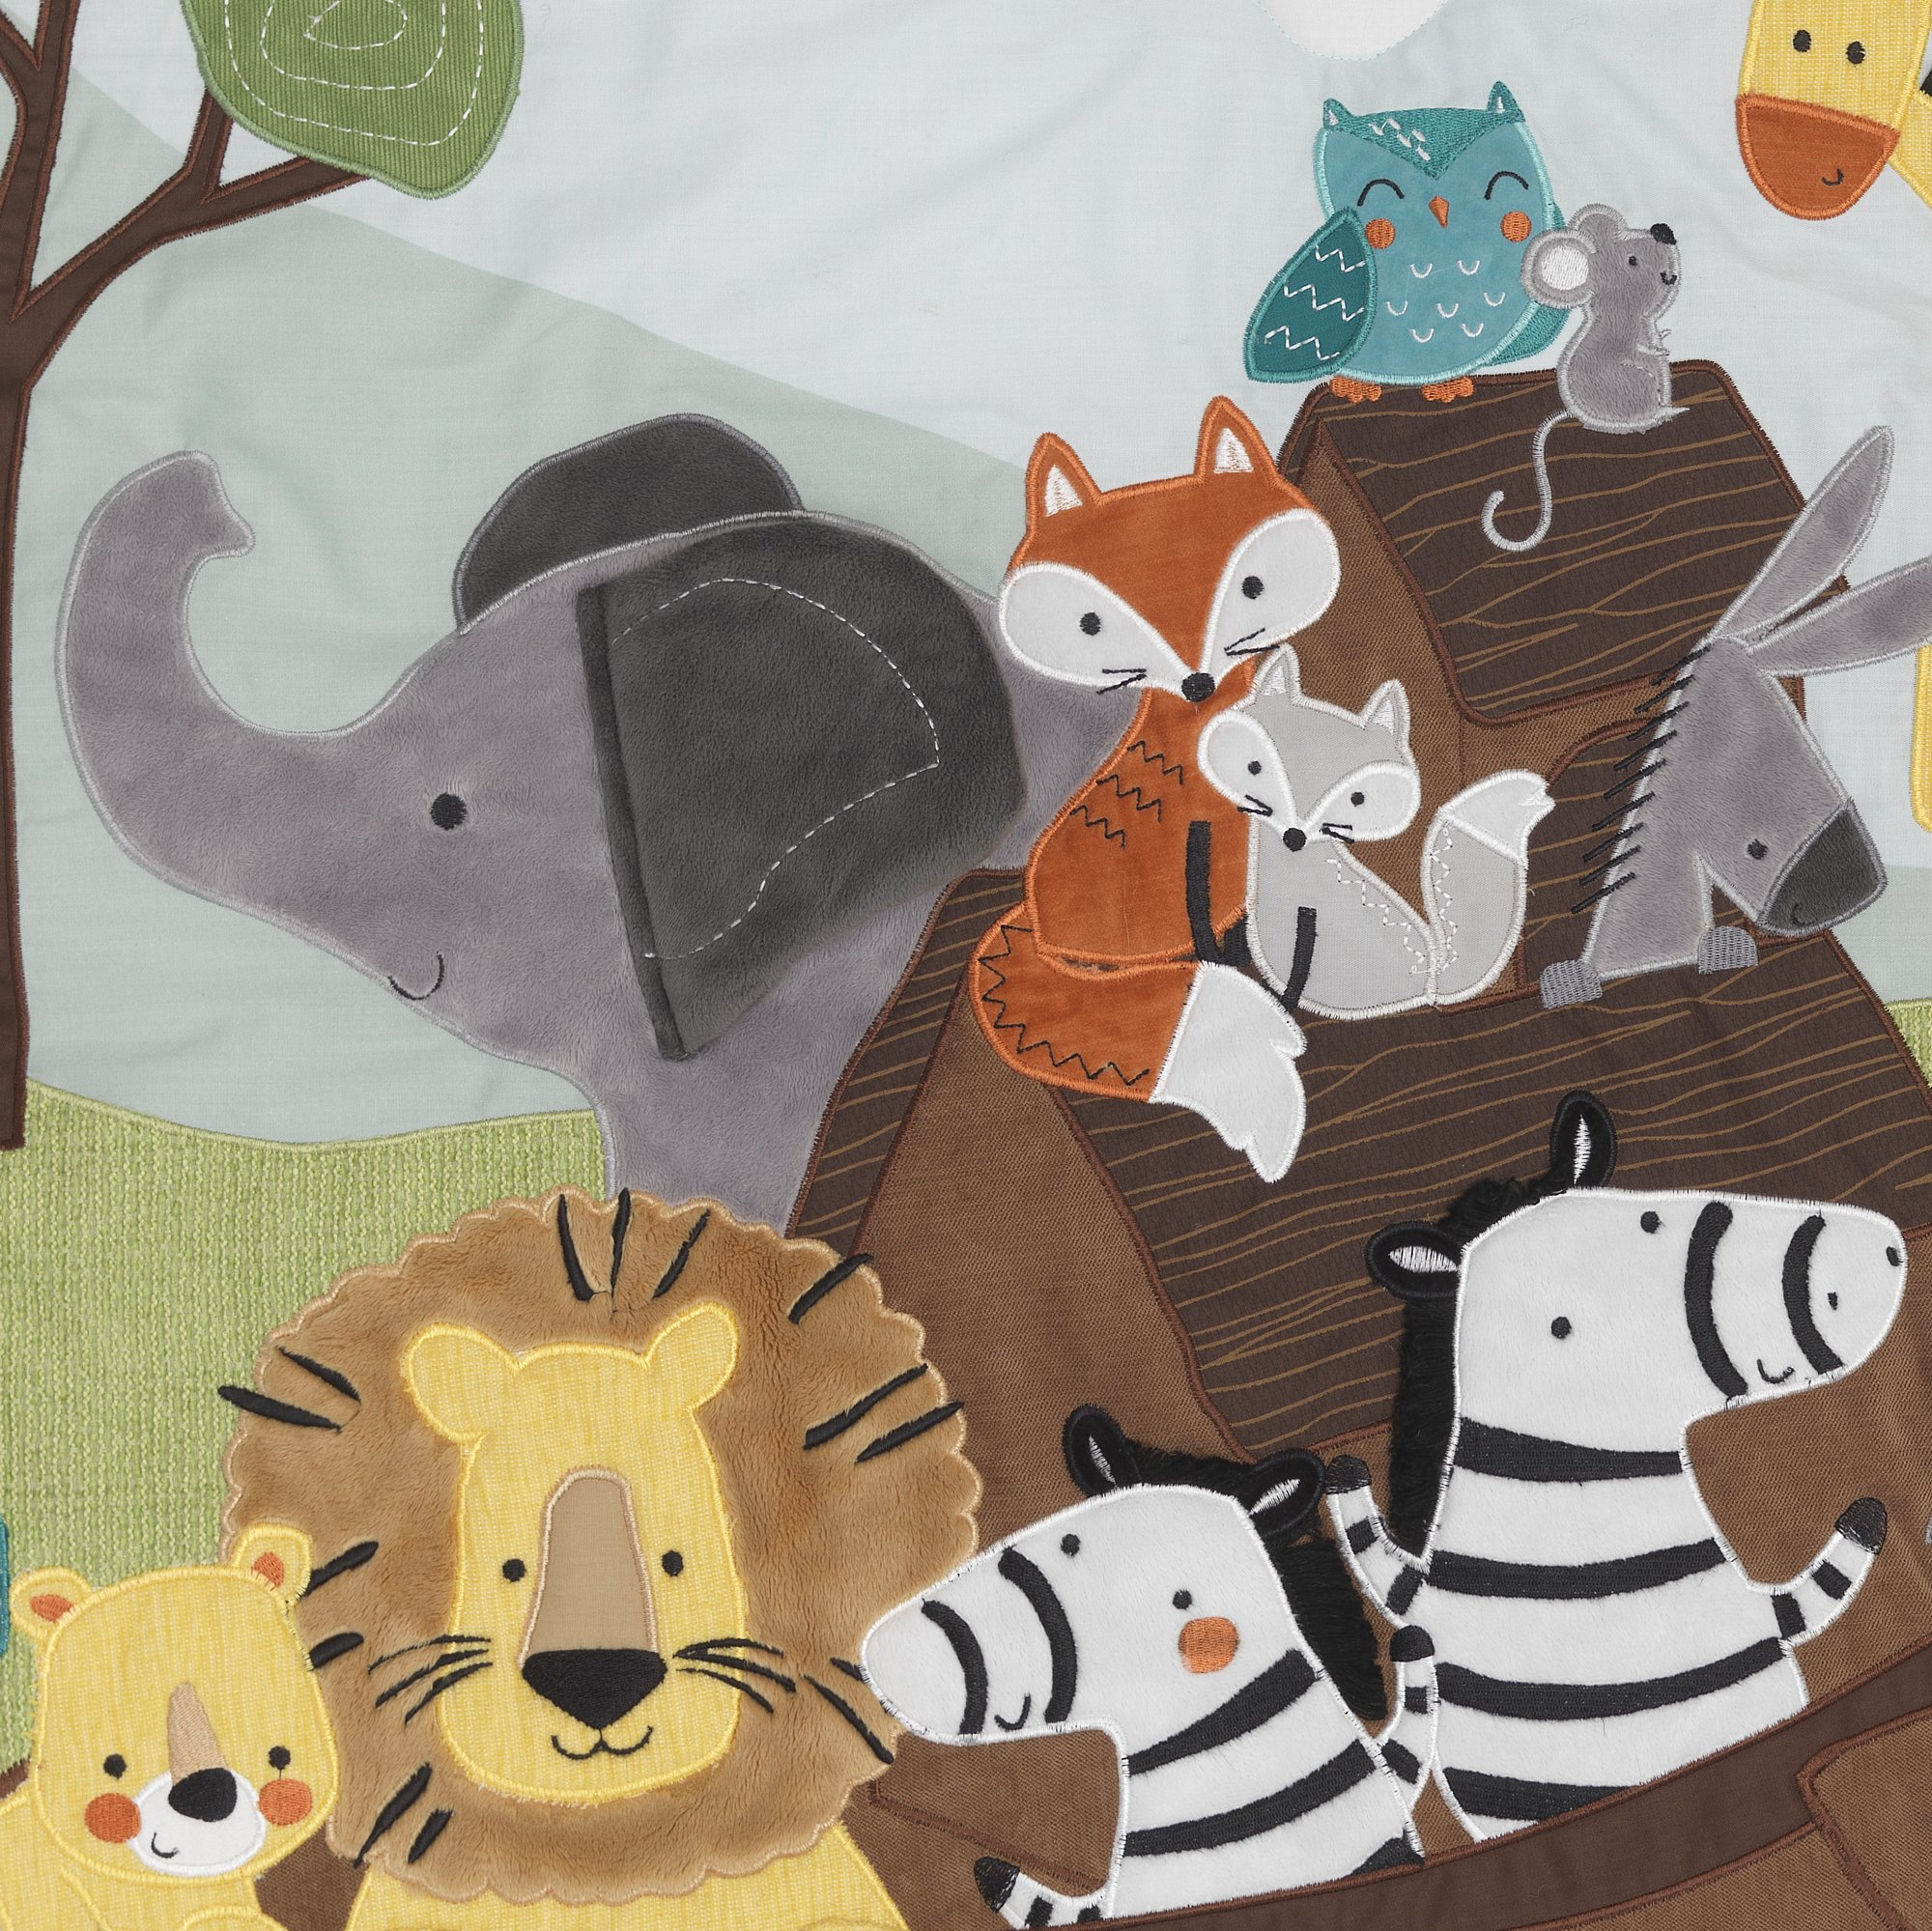 Lambs & Ivy Two of A Kind Noah'S Ark Animals 4 Piece Crib Bedding Set, Blue/Gray by Lambs & Ivy (Image #3)